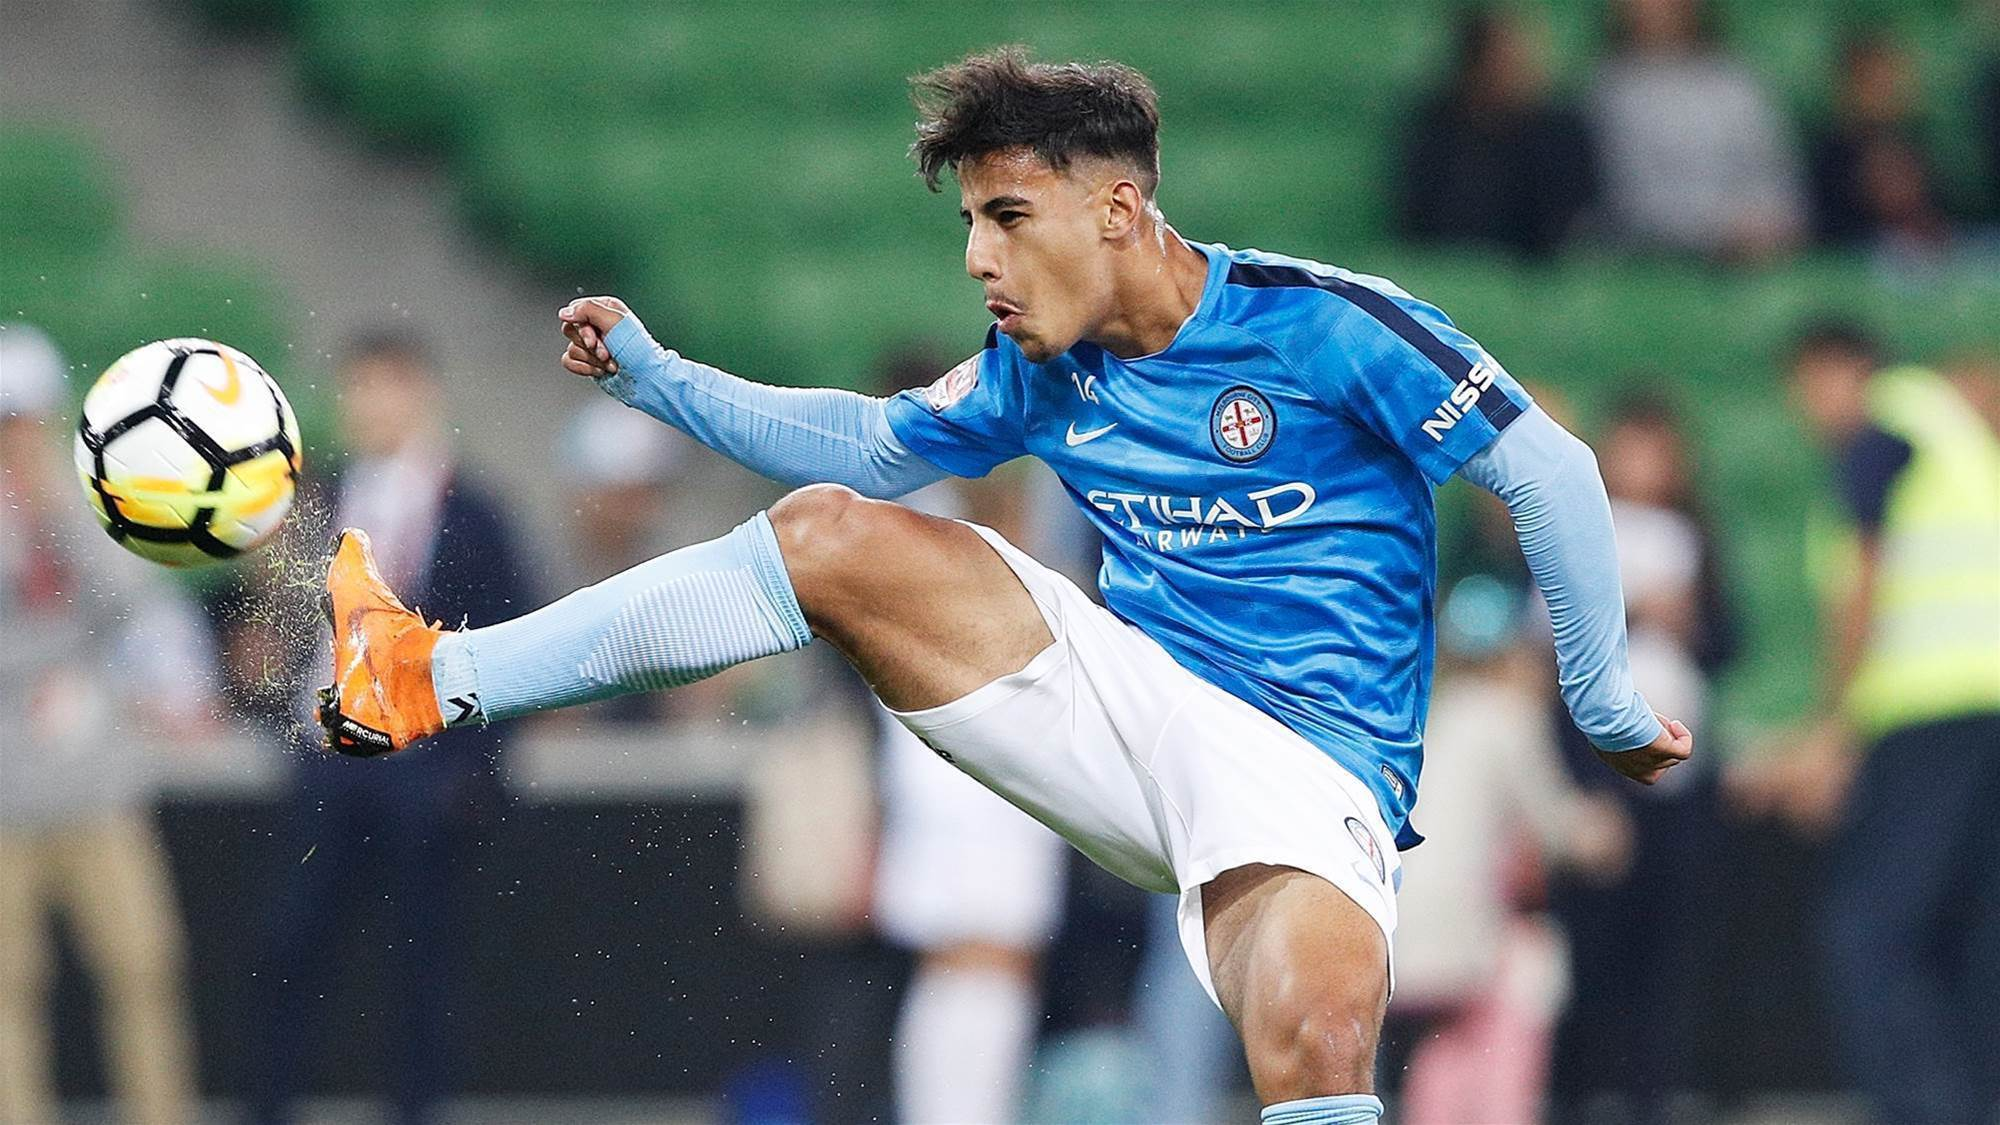 Manchester City's rumoured plan for Arzani